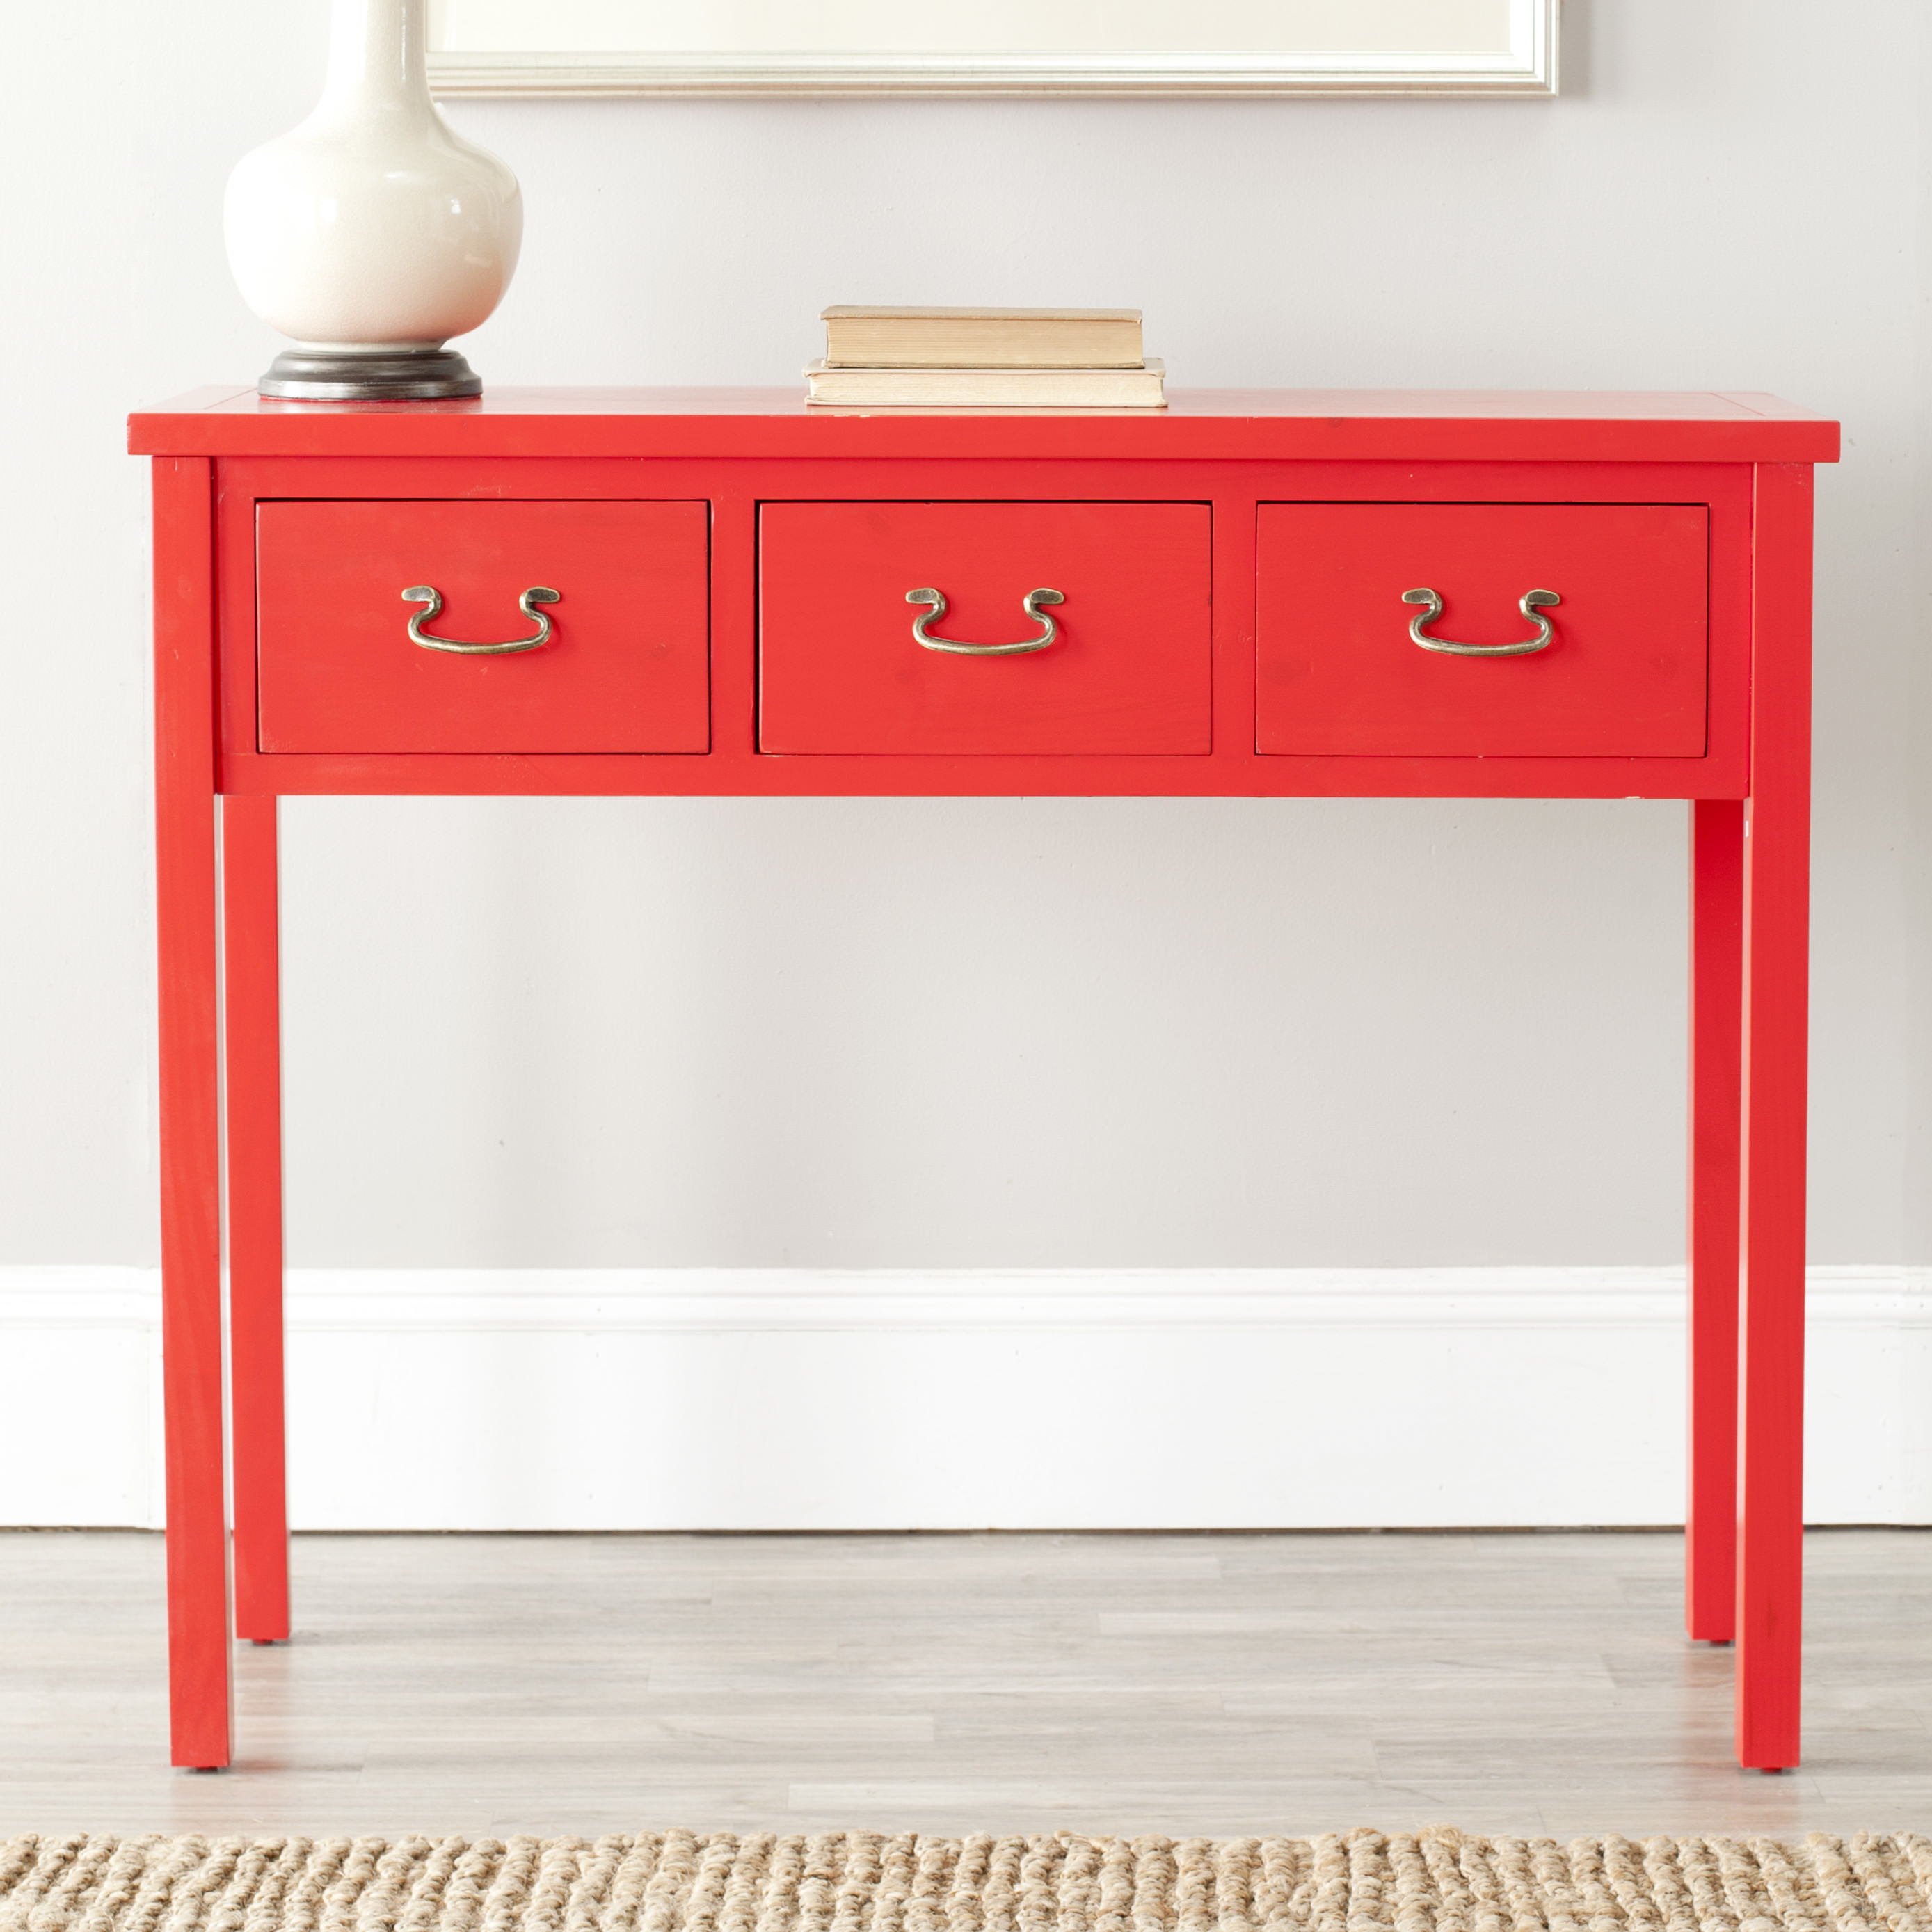 Foyer Table Red : Foyer entry table ideas types and designs photos